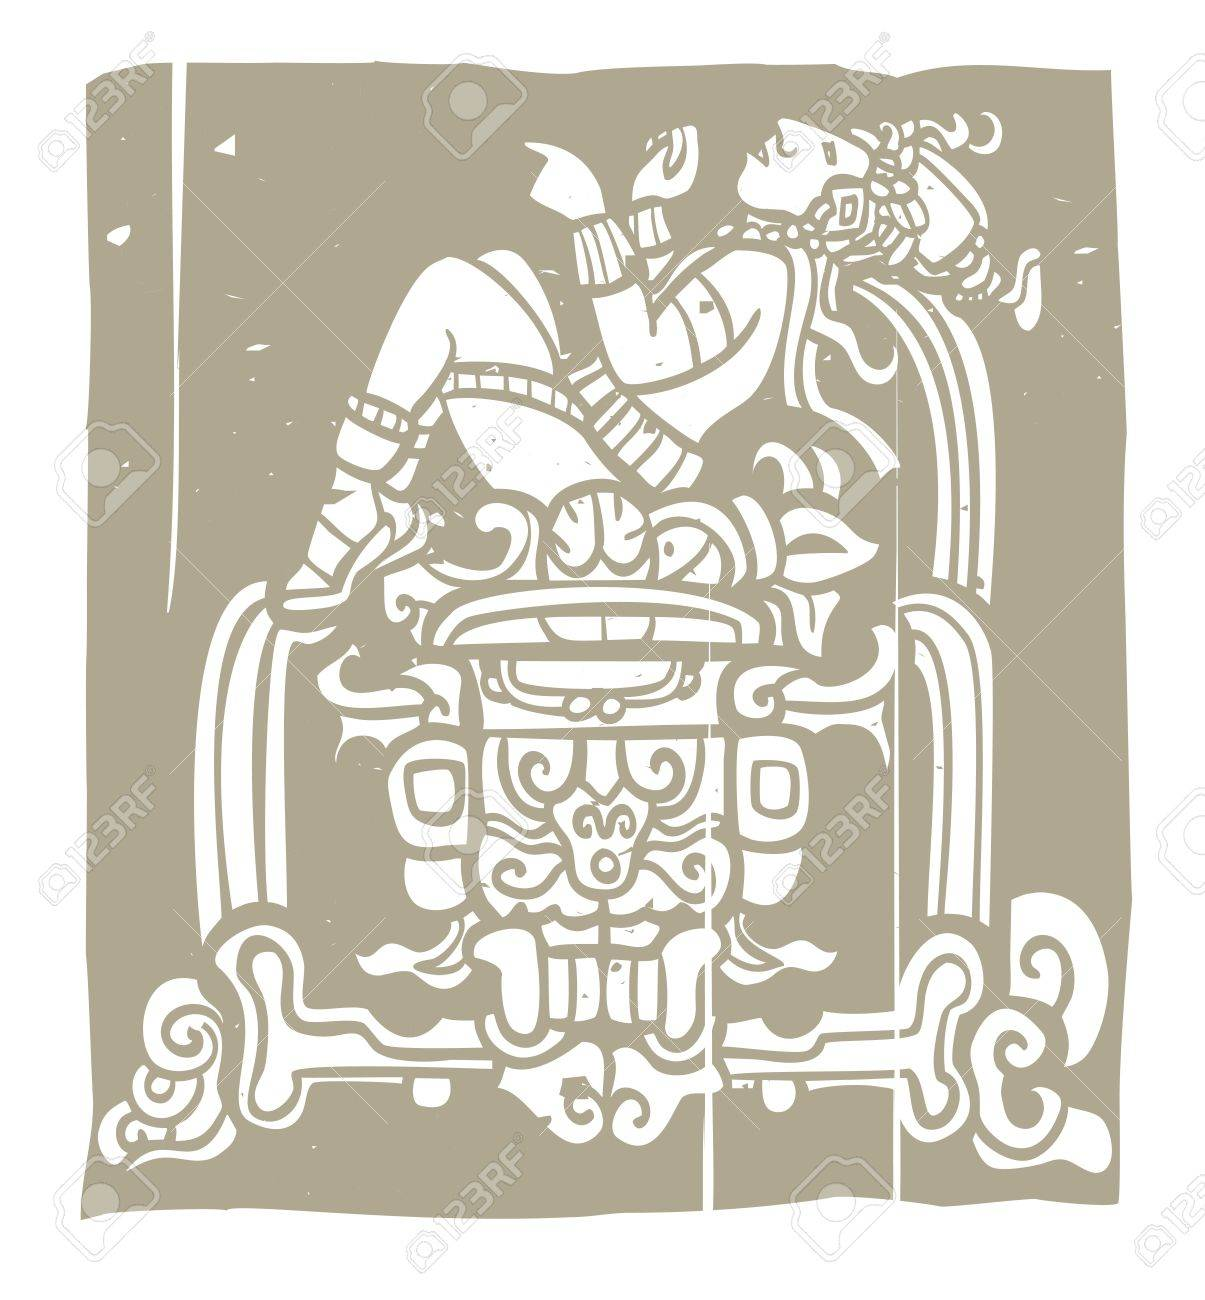 Reclining Mayan with throne adapted from temple images Stock Vector - 13375619